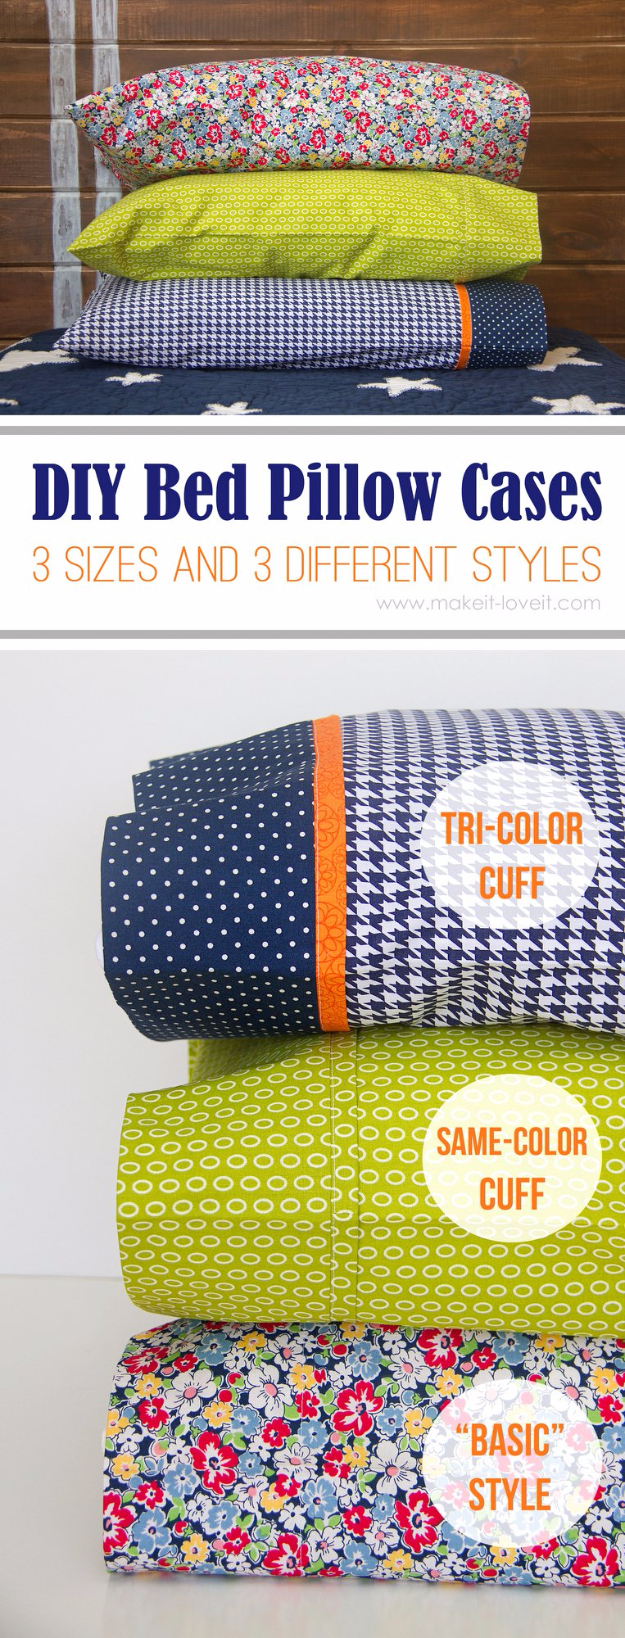 DIY Pillowcases - DIY Bed Pillow Cases - Easy Sewing Projects for Pillows - Bedroom and & 35 DIY Pillowcases You Need in Your Bedroom Today - DIY Joy pillowsntoast.com